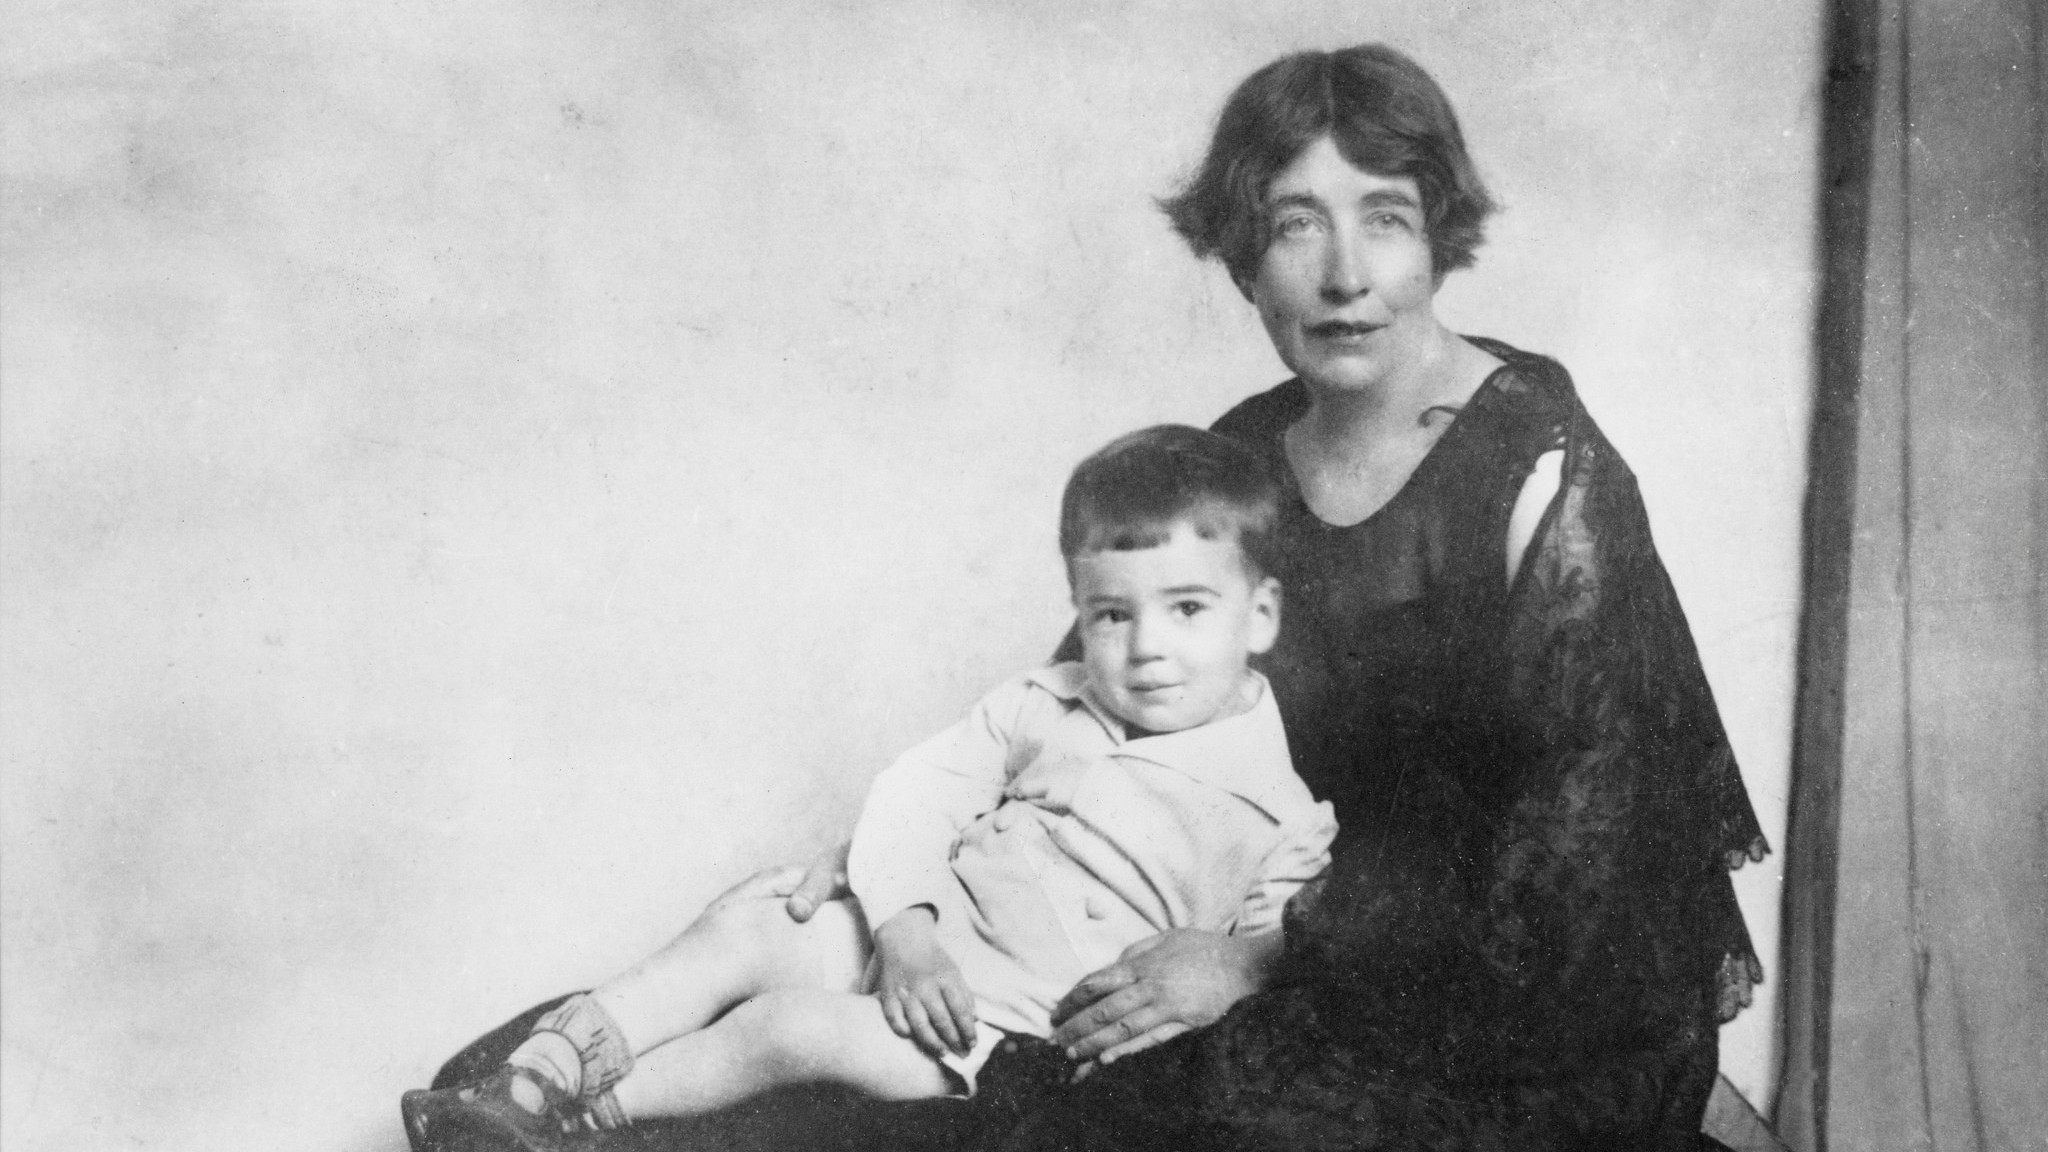 Suffragette Sylvia Pankhurst's Granddaughter on How Her Grandma Changed Her Life